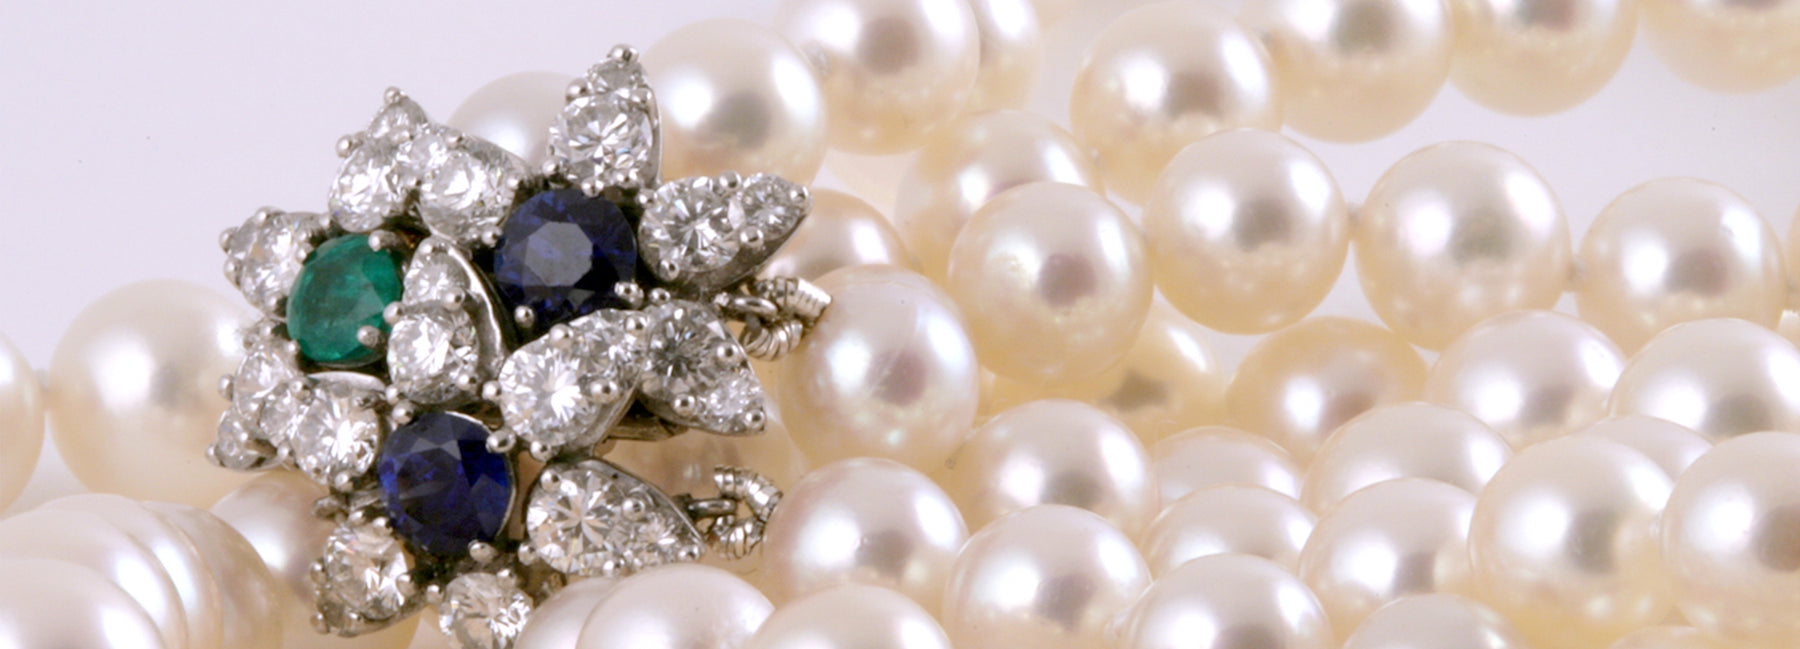 Macklowe Gallery's Definitive Guide To Pearls